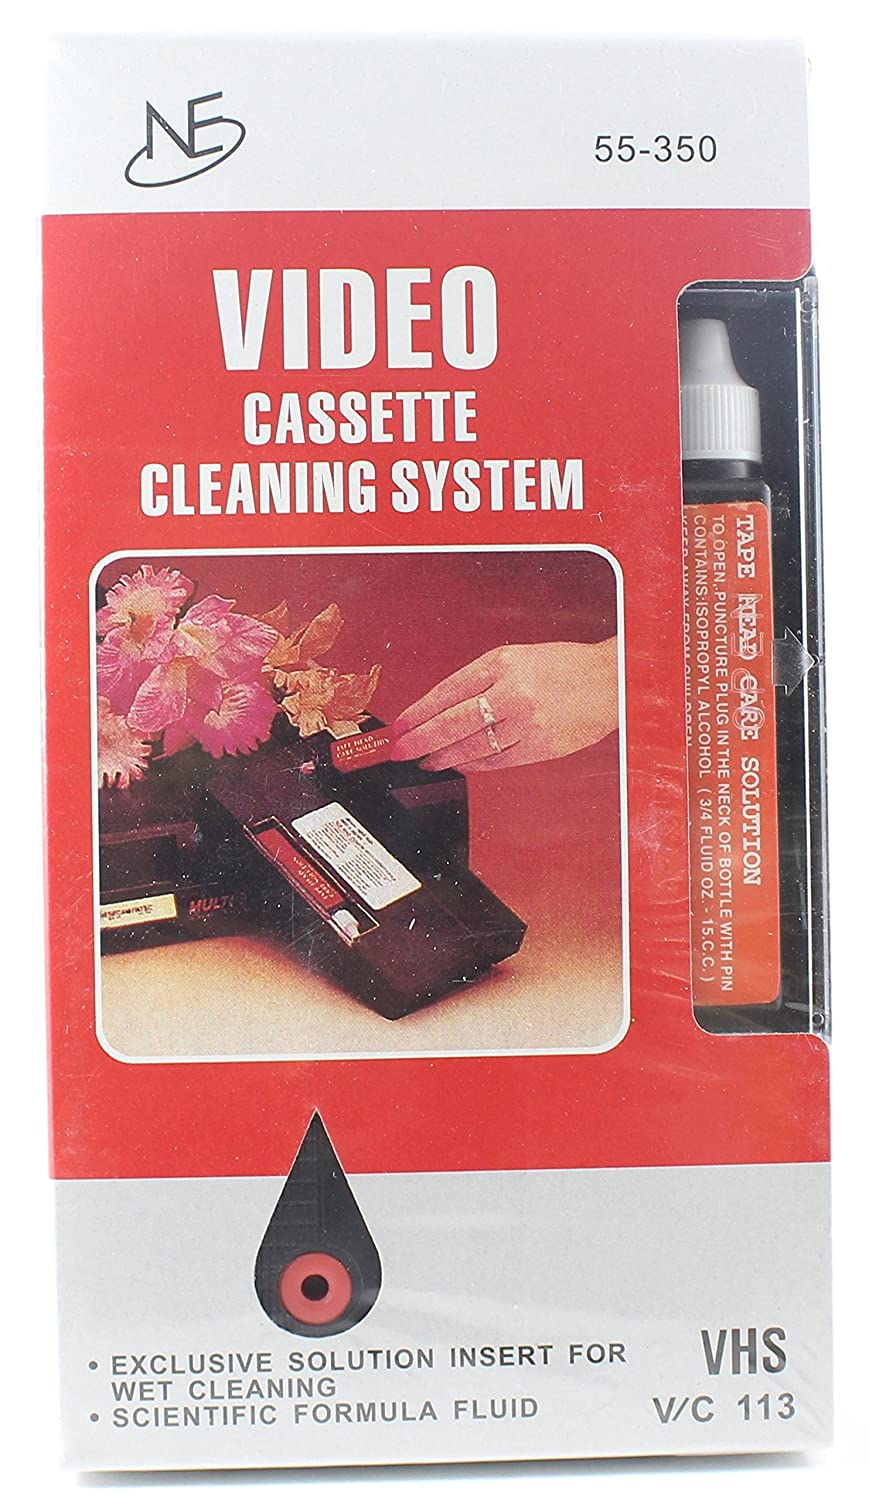 Video Cassette Cleaning System VHS Northeast Wholesale